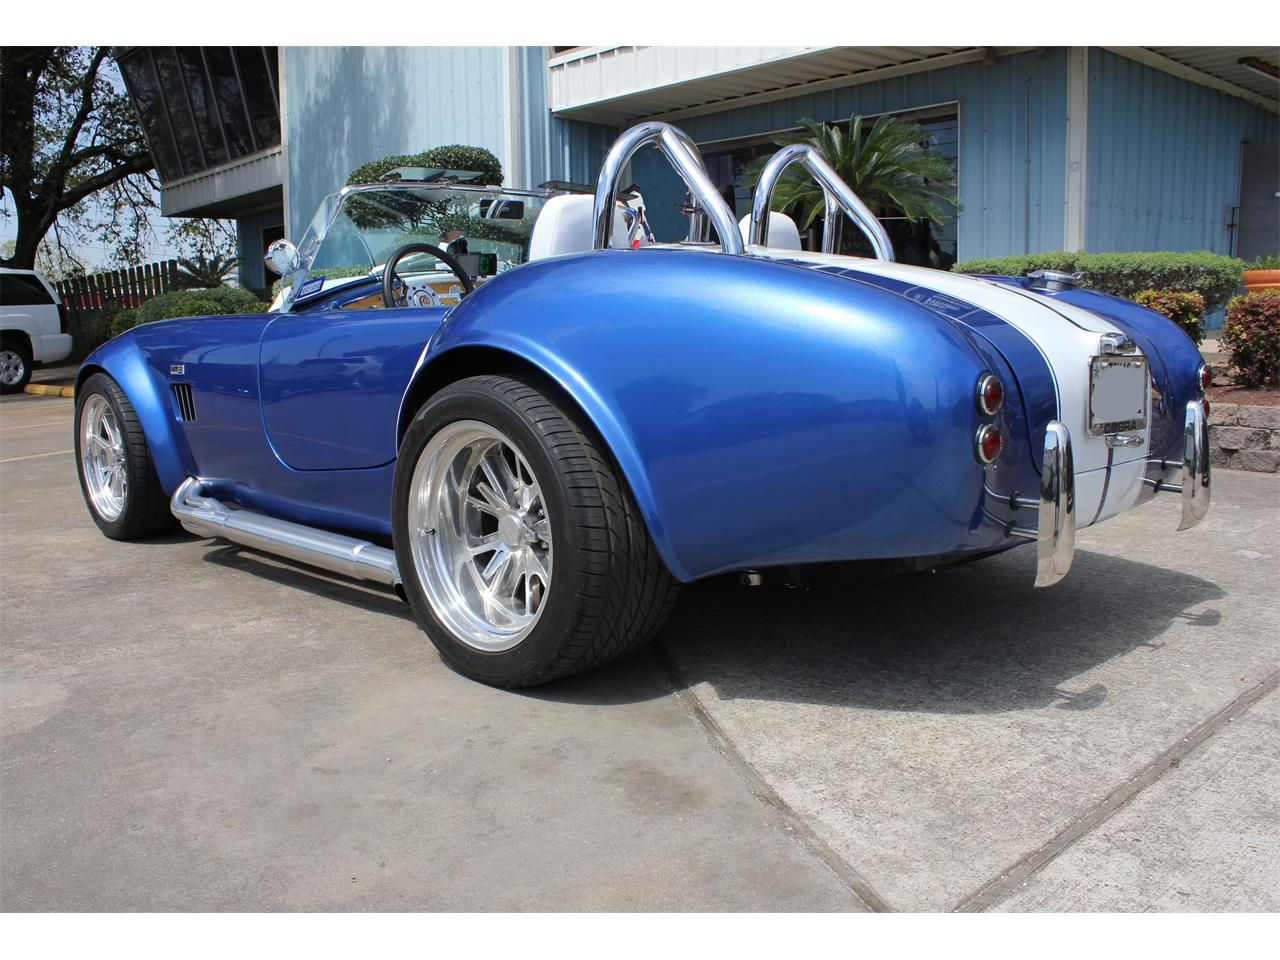 Large Picture of Classic 1966 Shelby Cobra Replica located in Texas Offered by a Private Seller - Q2D3